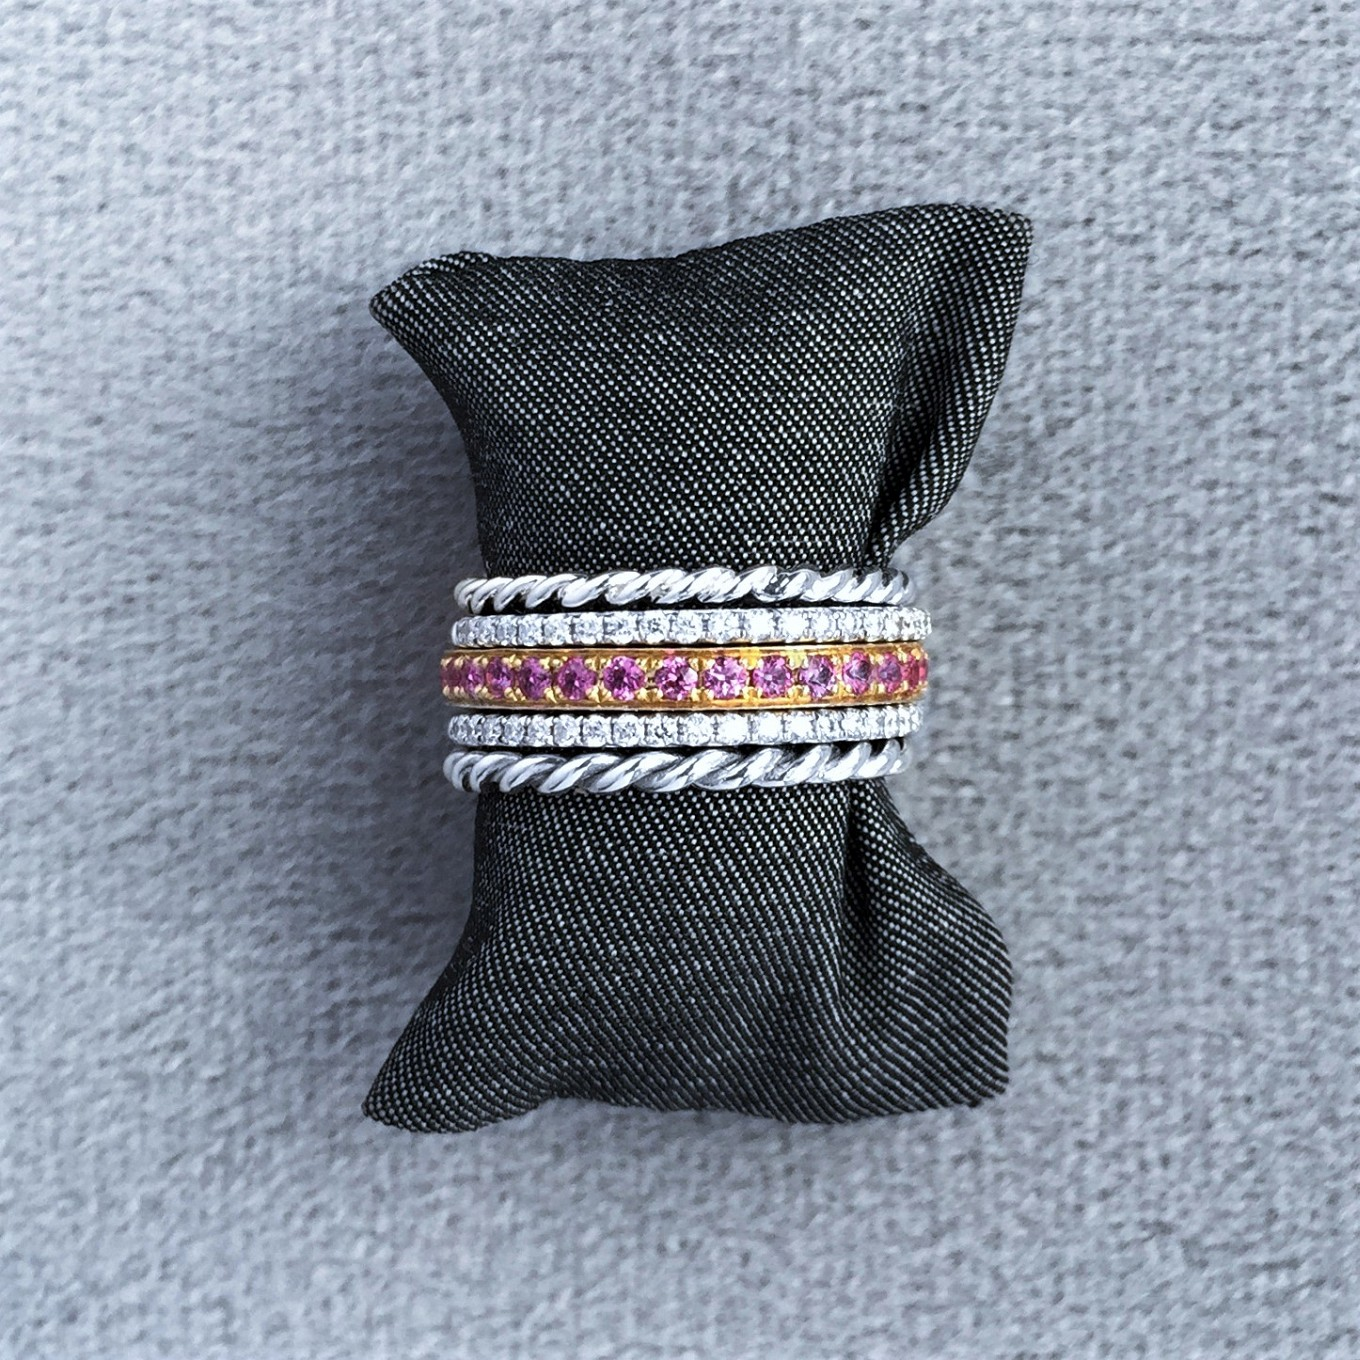 Diamond pink sapphire & braided bands in white & yellow gold